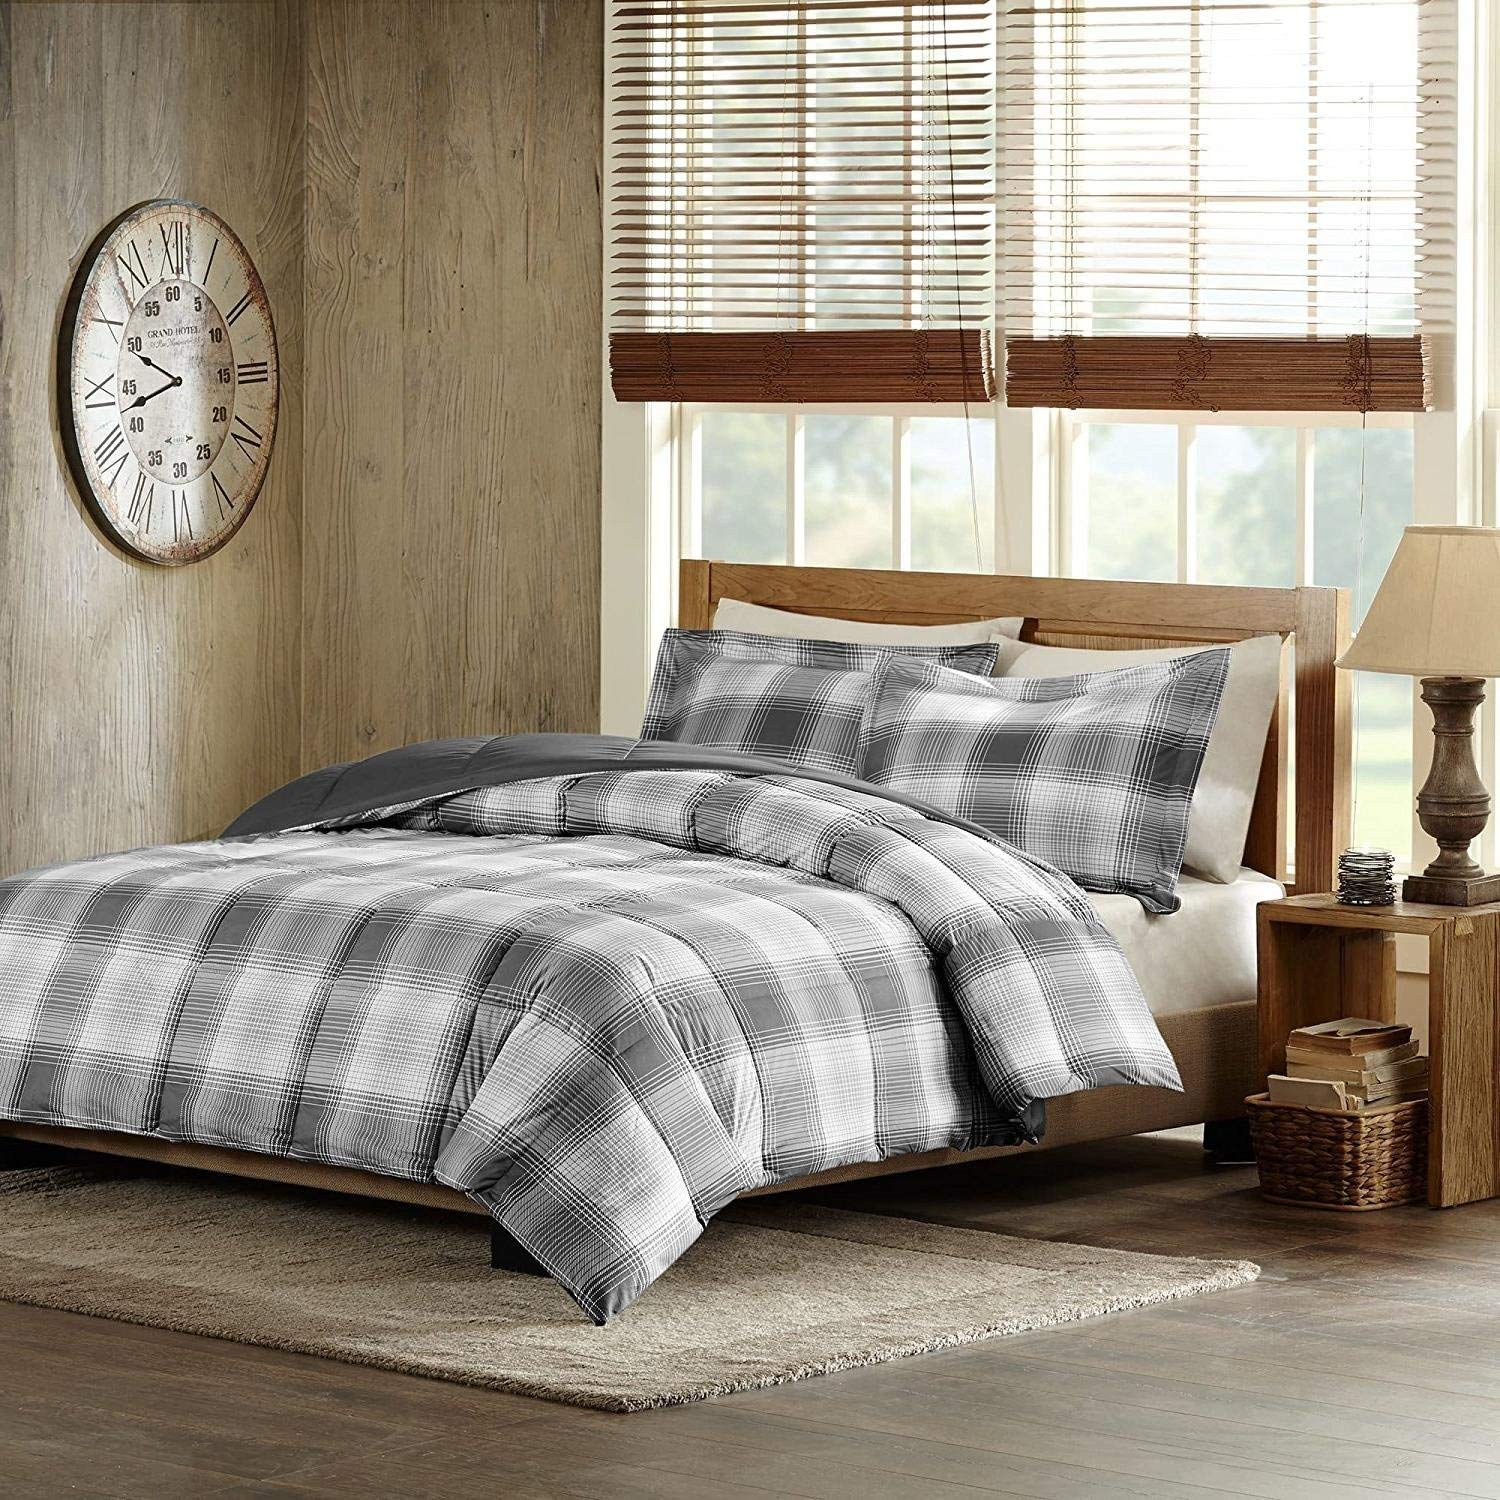 MS 3pc Grey Plaid Full Queen Comforter Set, Gray Checked Checkered Bedding Tartan Madras Lumberjack Stripes Line Pattern Squares White Black Cabin Lodge Theme, Striped Soft, Polyester